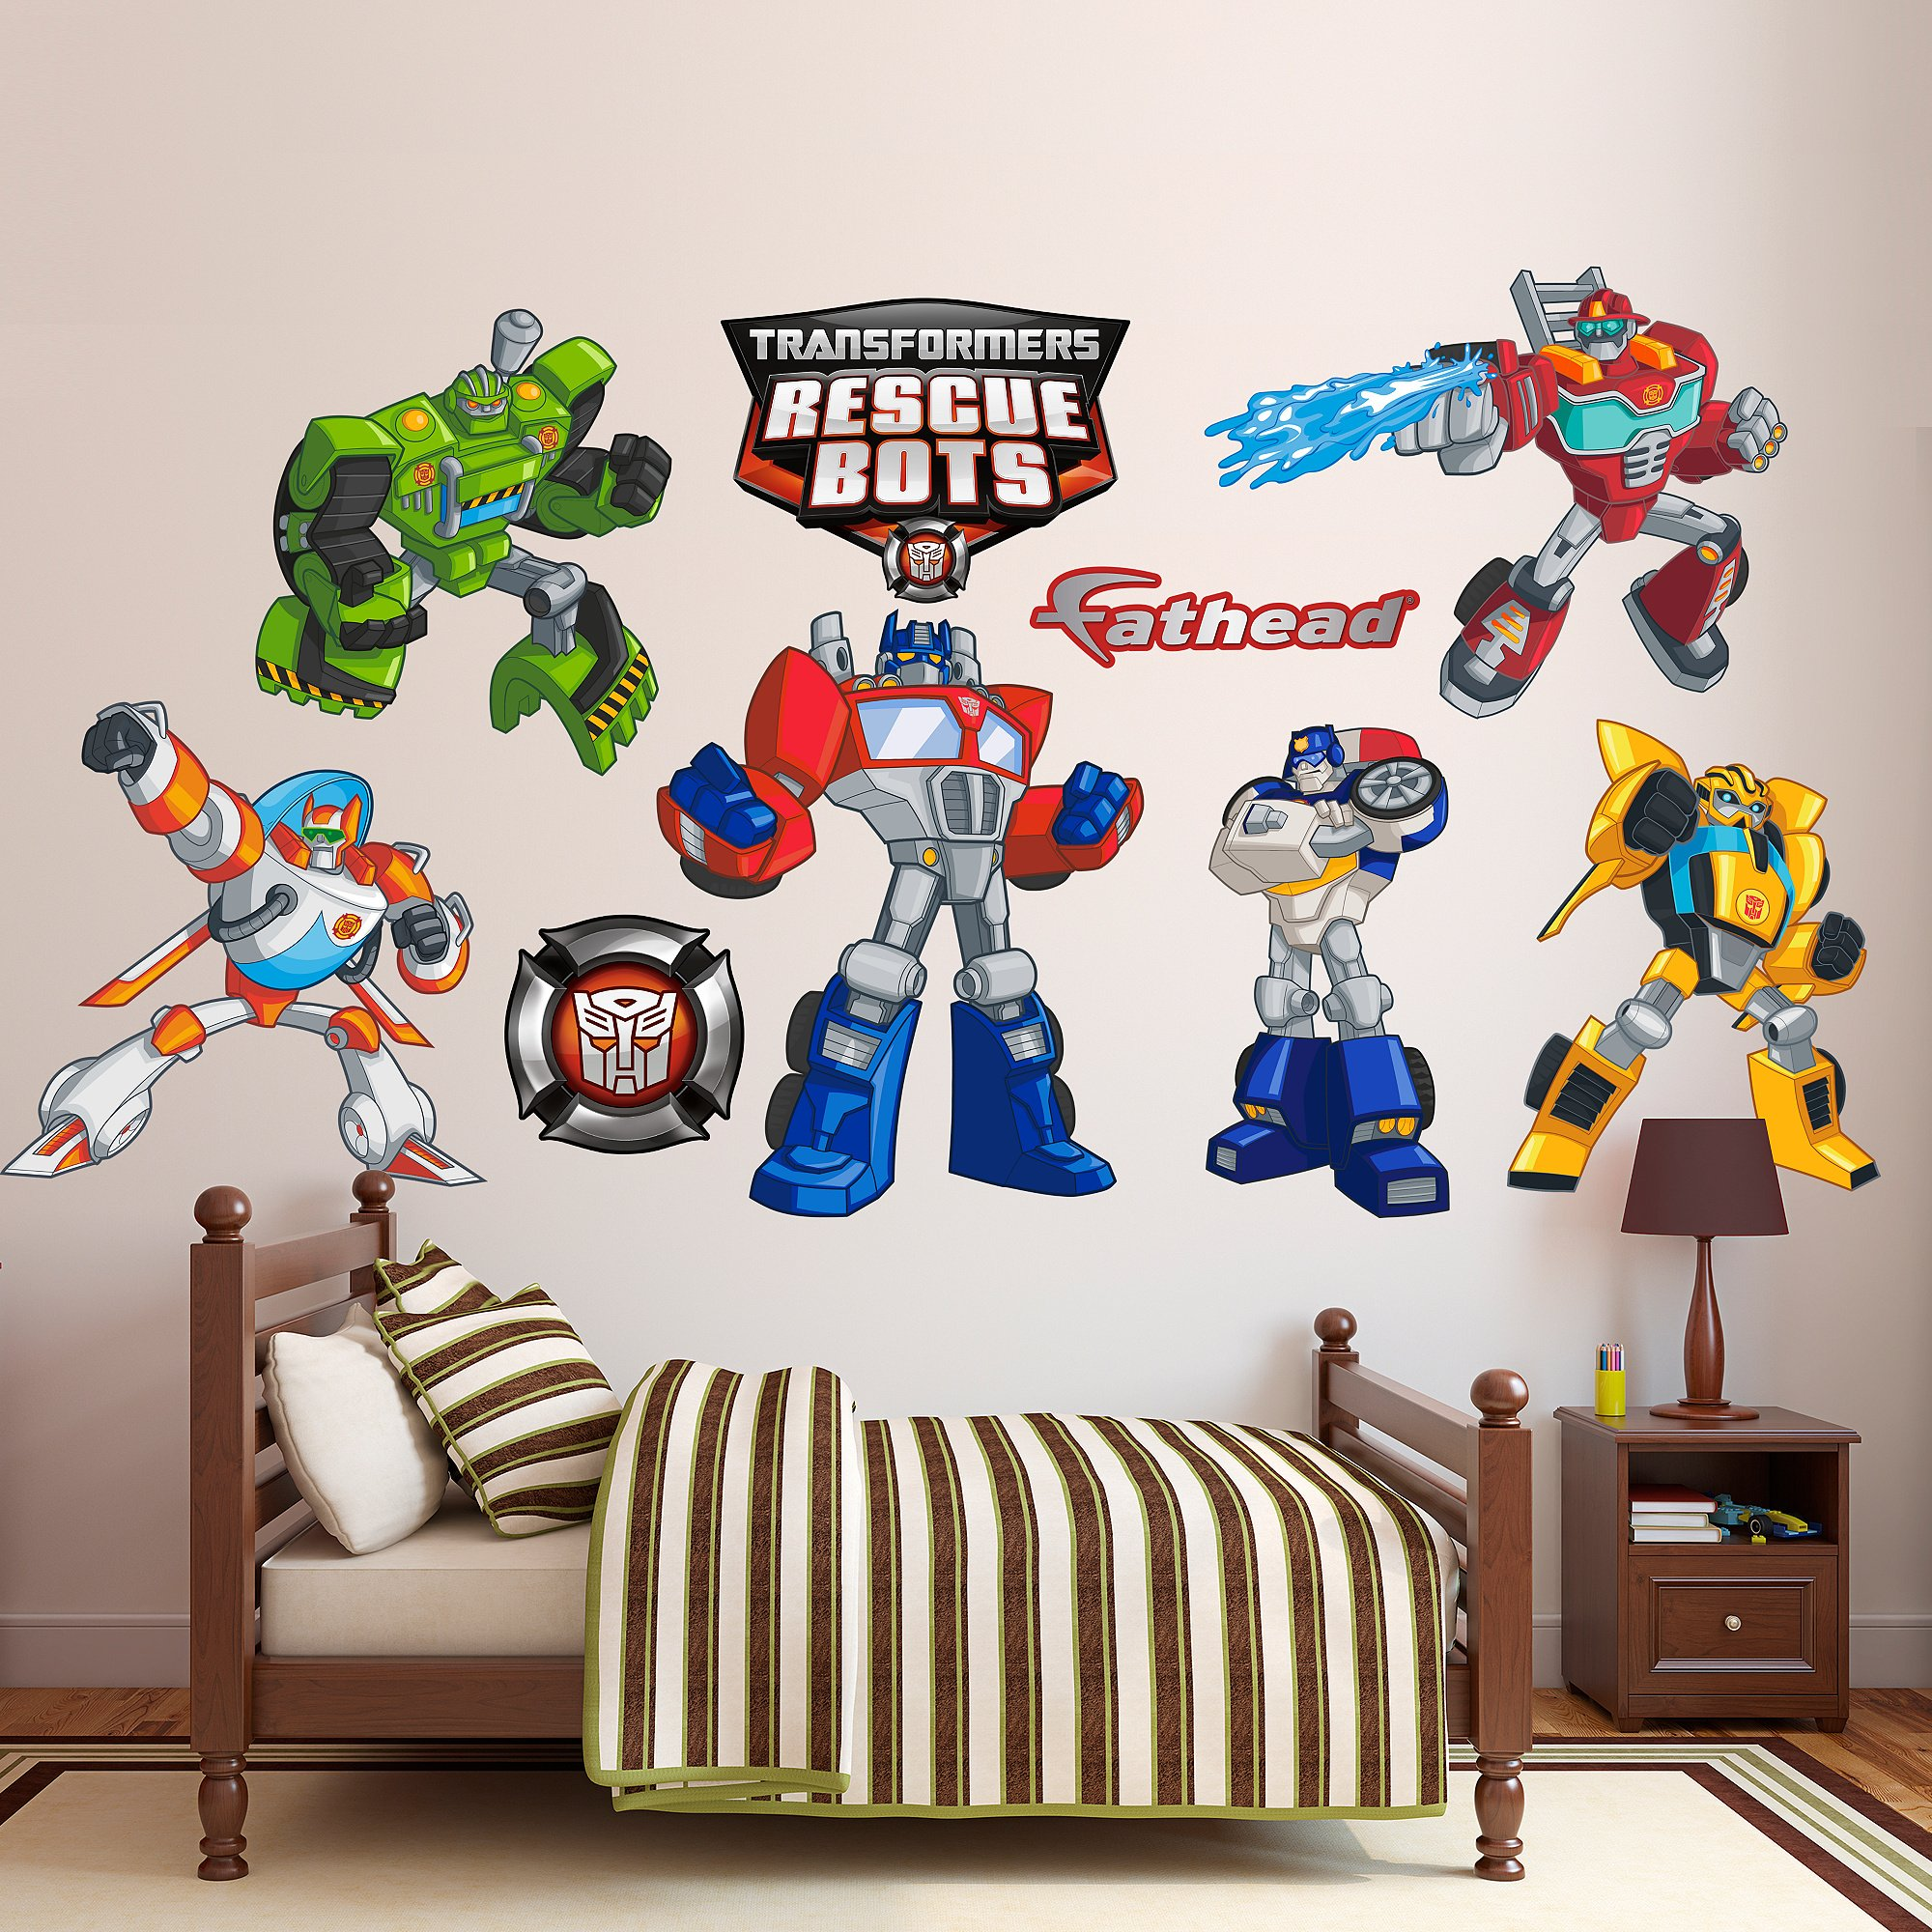 FATHEAD Transformers: Rescue Bots Collection-Giant OfficiallyLicensed Removable Wall Decal by FATHEAD